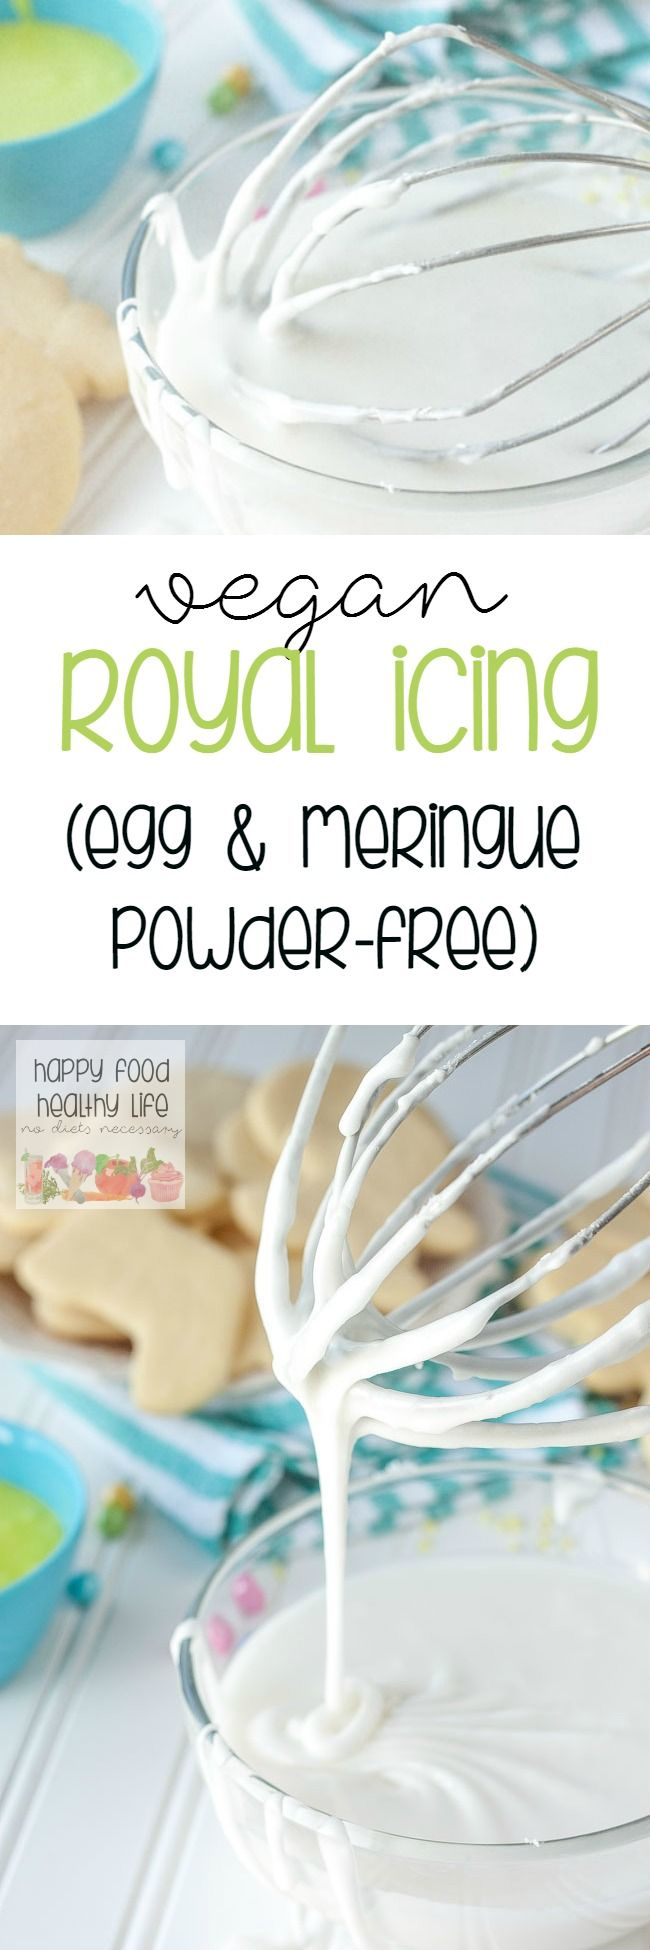 Egg-Free Vegan Royal Icing - the perfect icing to decorate your cooking without having to use eggs or even meringue powder!